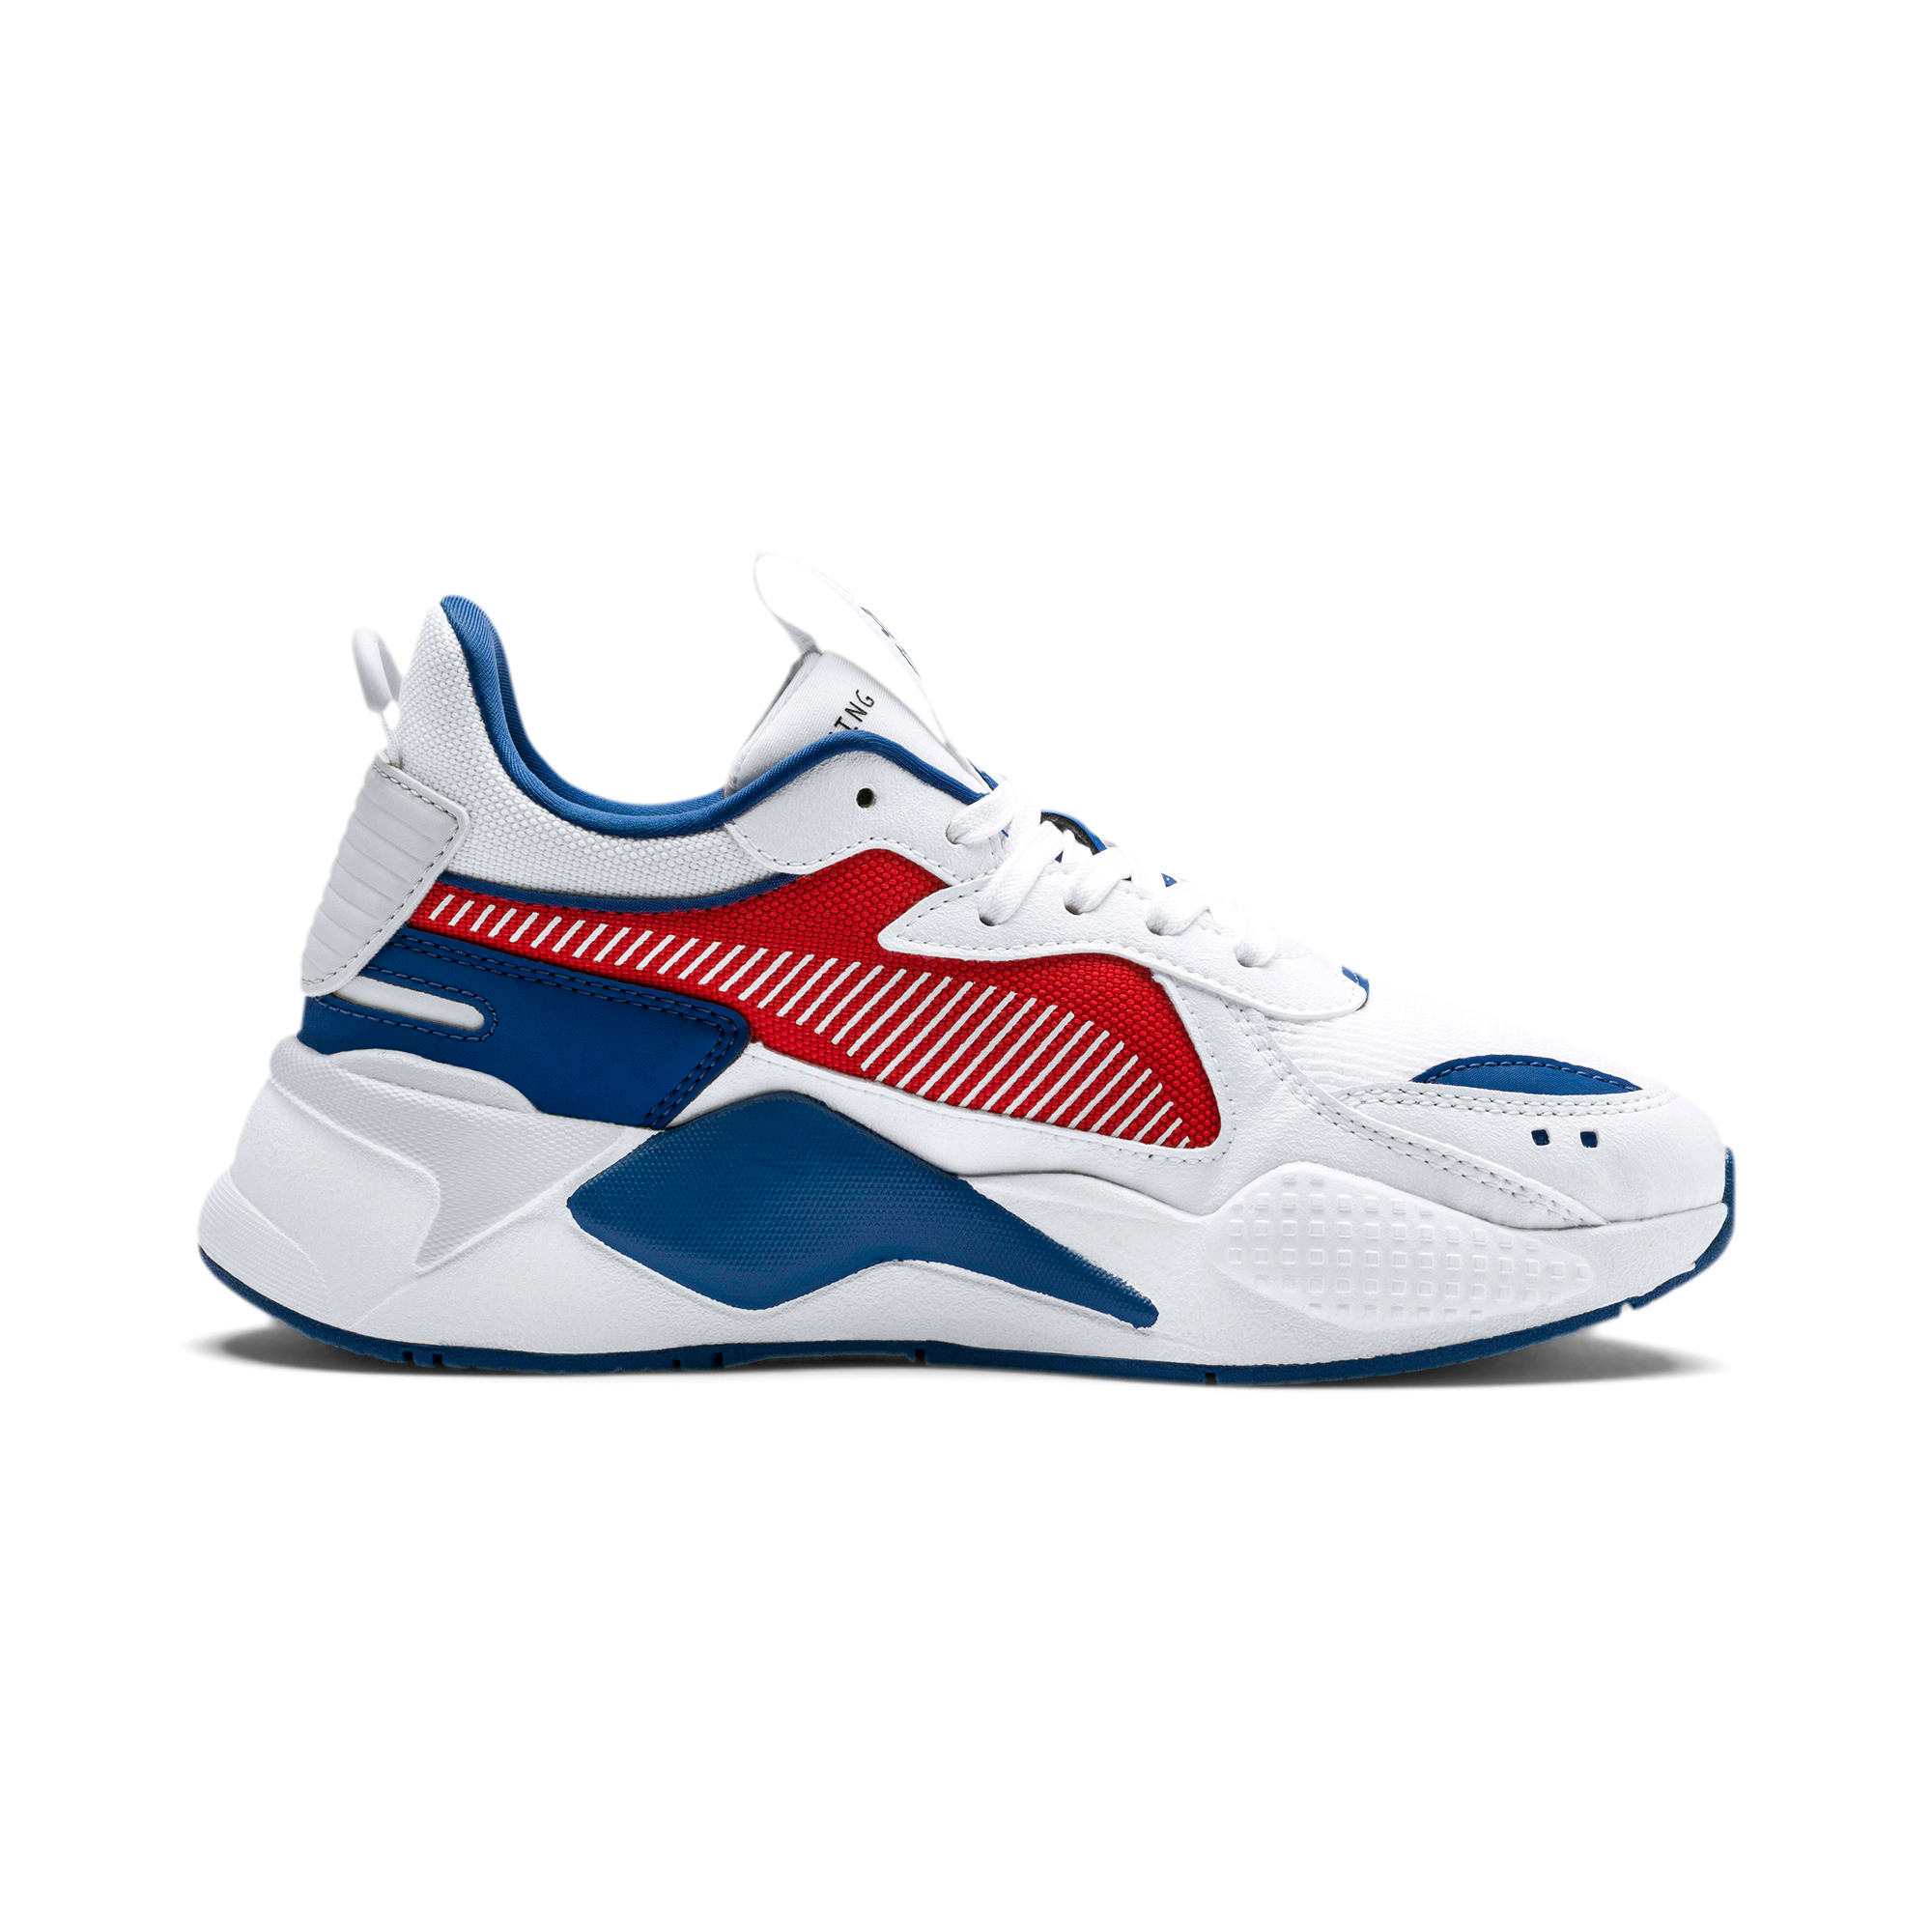 Thumbnail 5 of RS-X Hard Drive Youth Trainers, Puma White-High Risk Red, medium